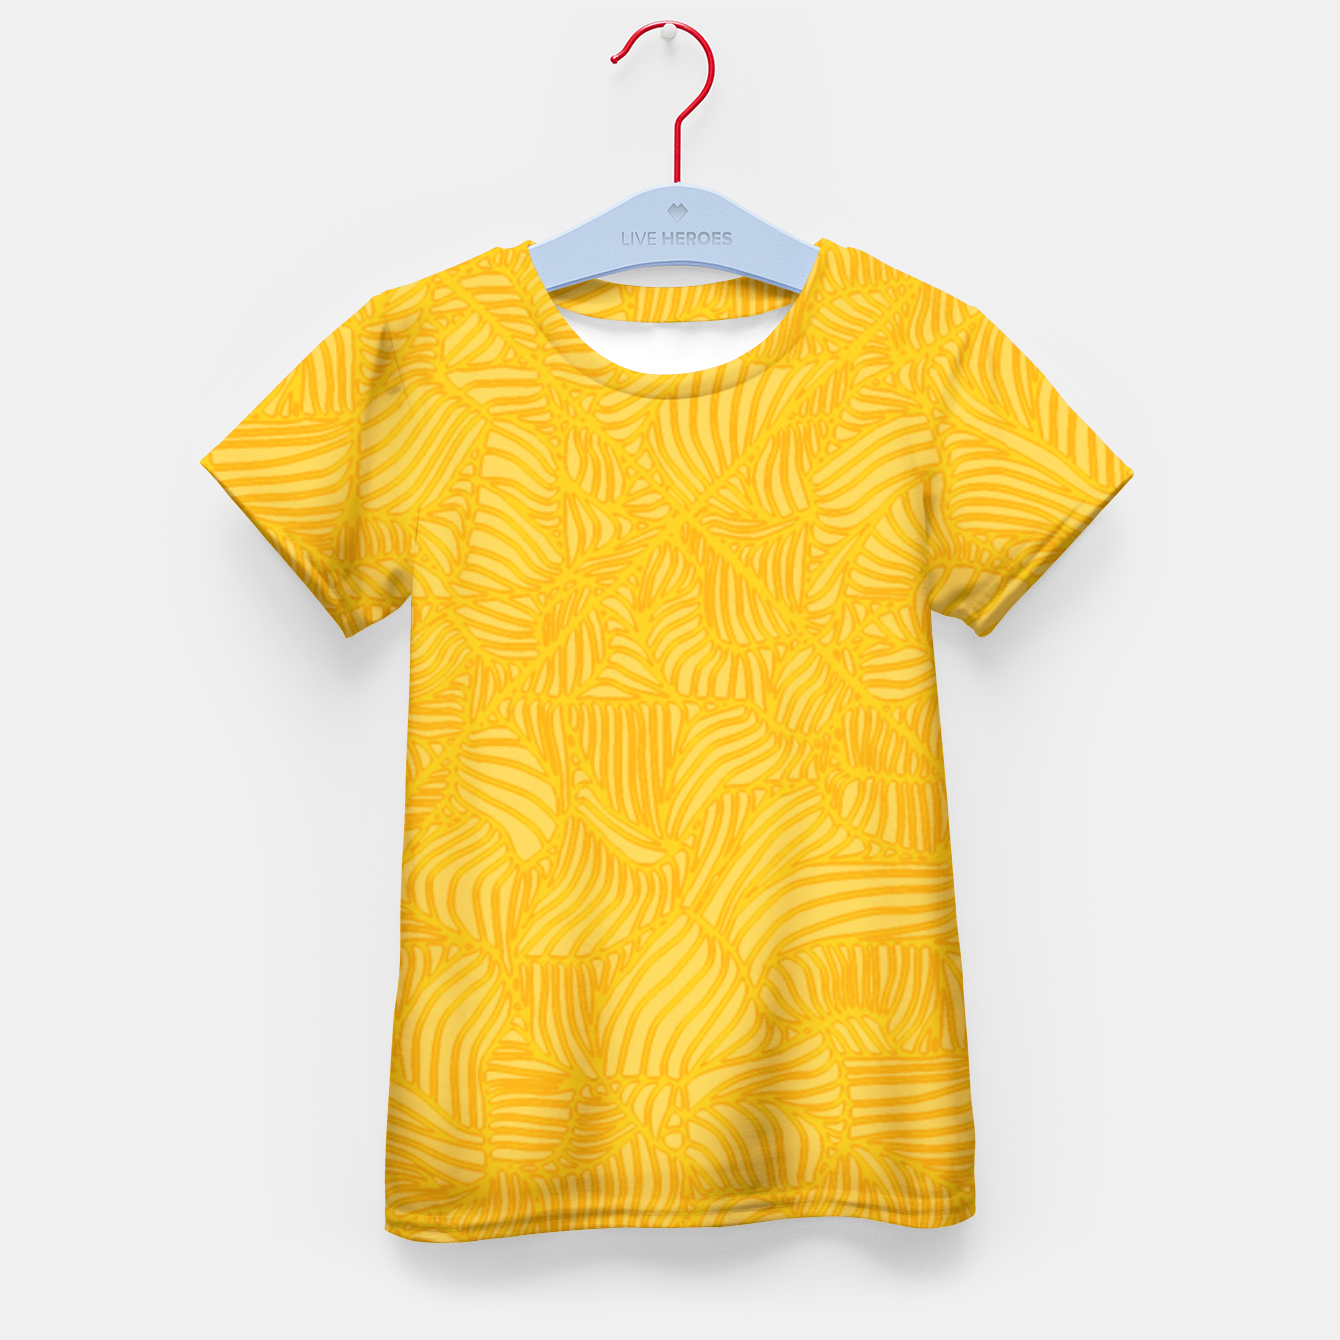 Image of yellow Kid's T-shirt - Live Heroes